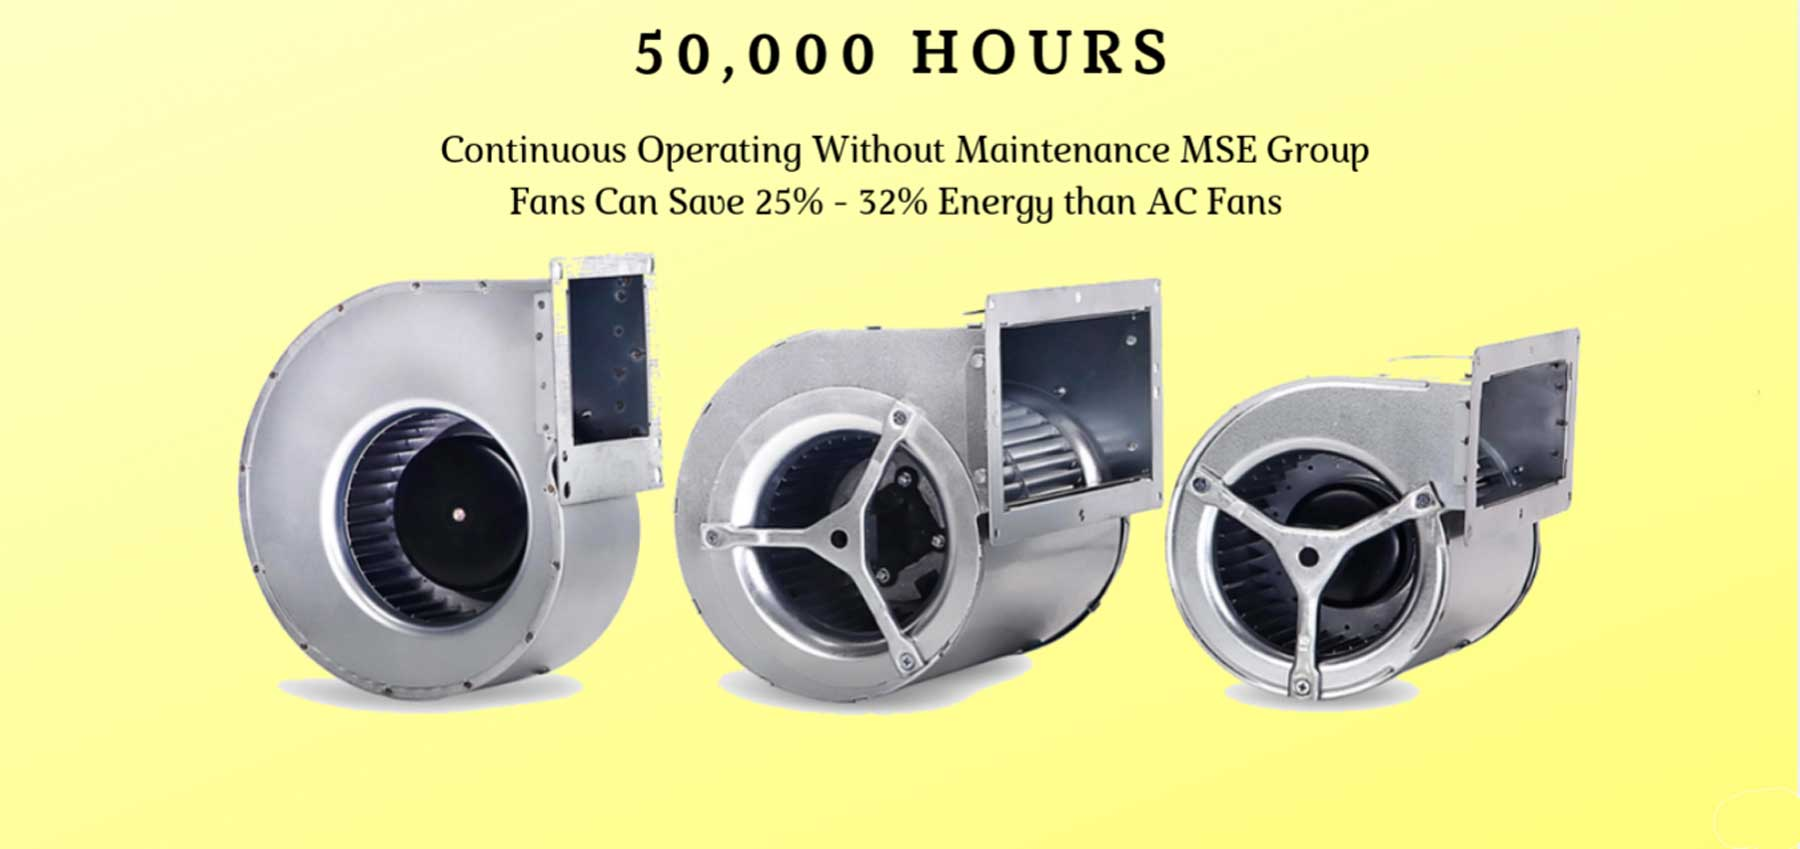 msefanblower - Single Inlet Blowers - Manufacturers & Suppliers in Delhi india